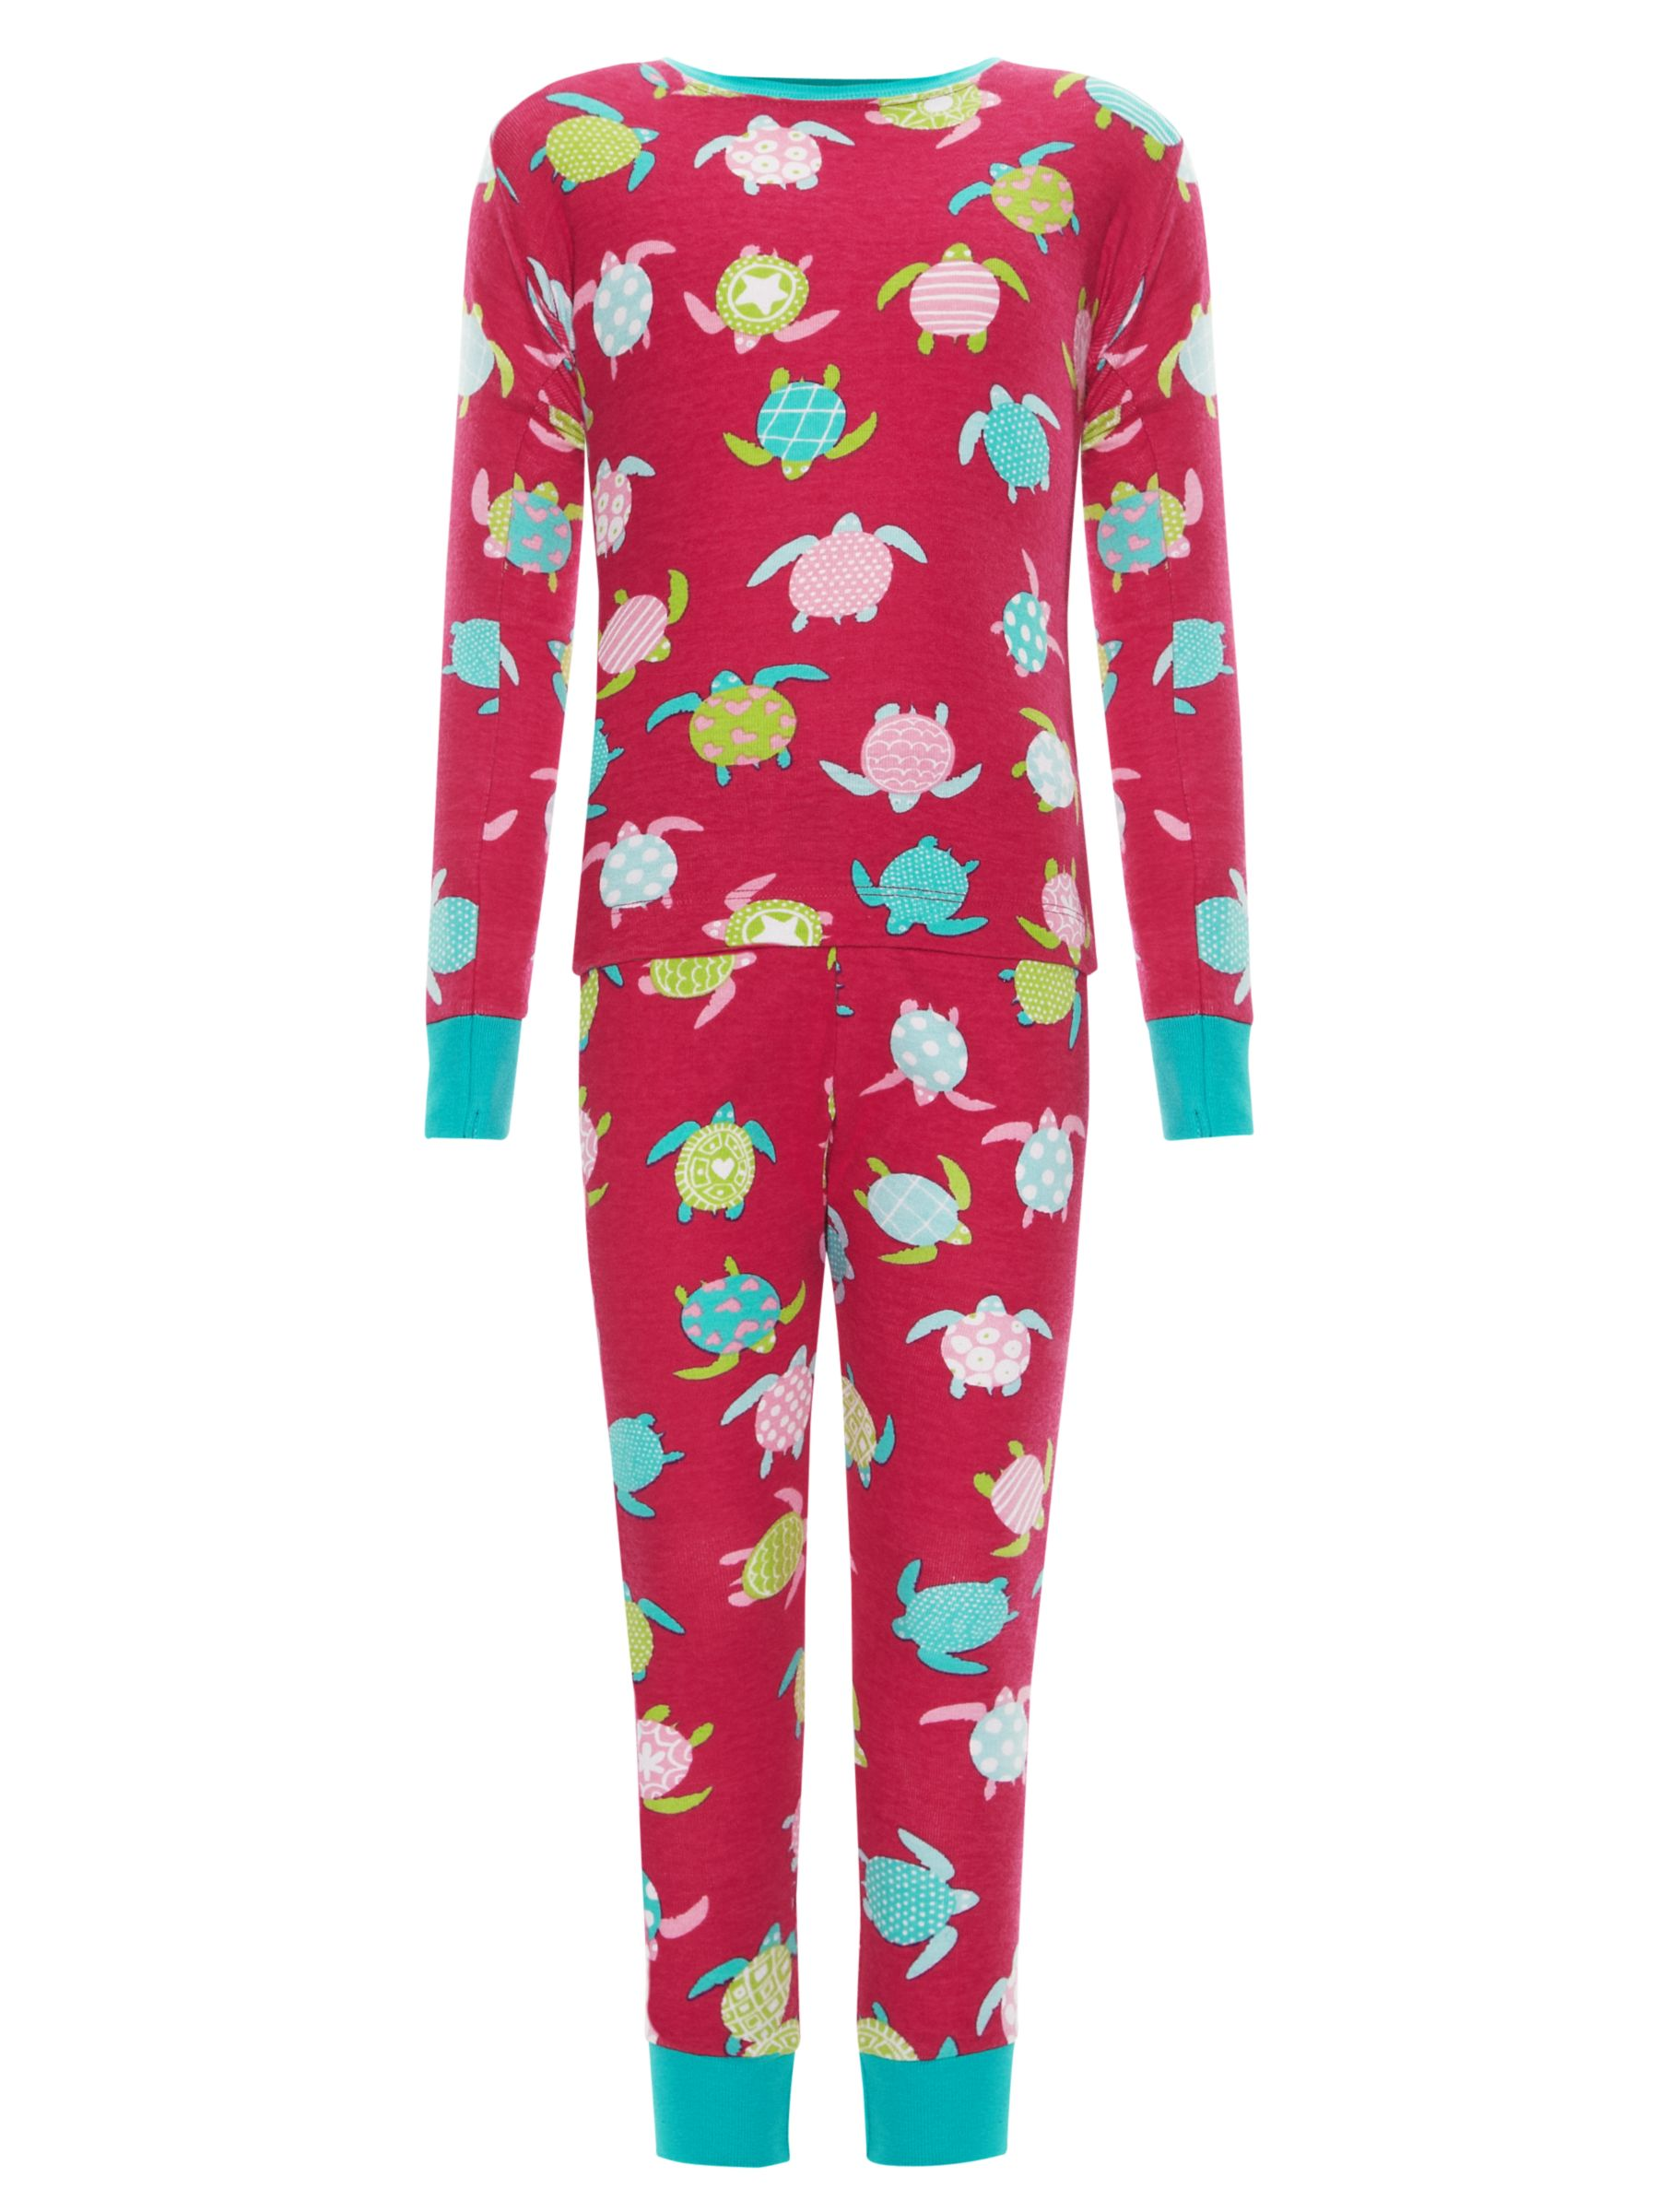 Hatley Sea Turtles Pyjamas, Pink